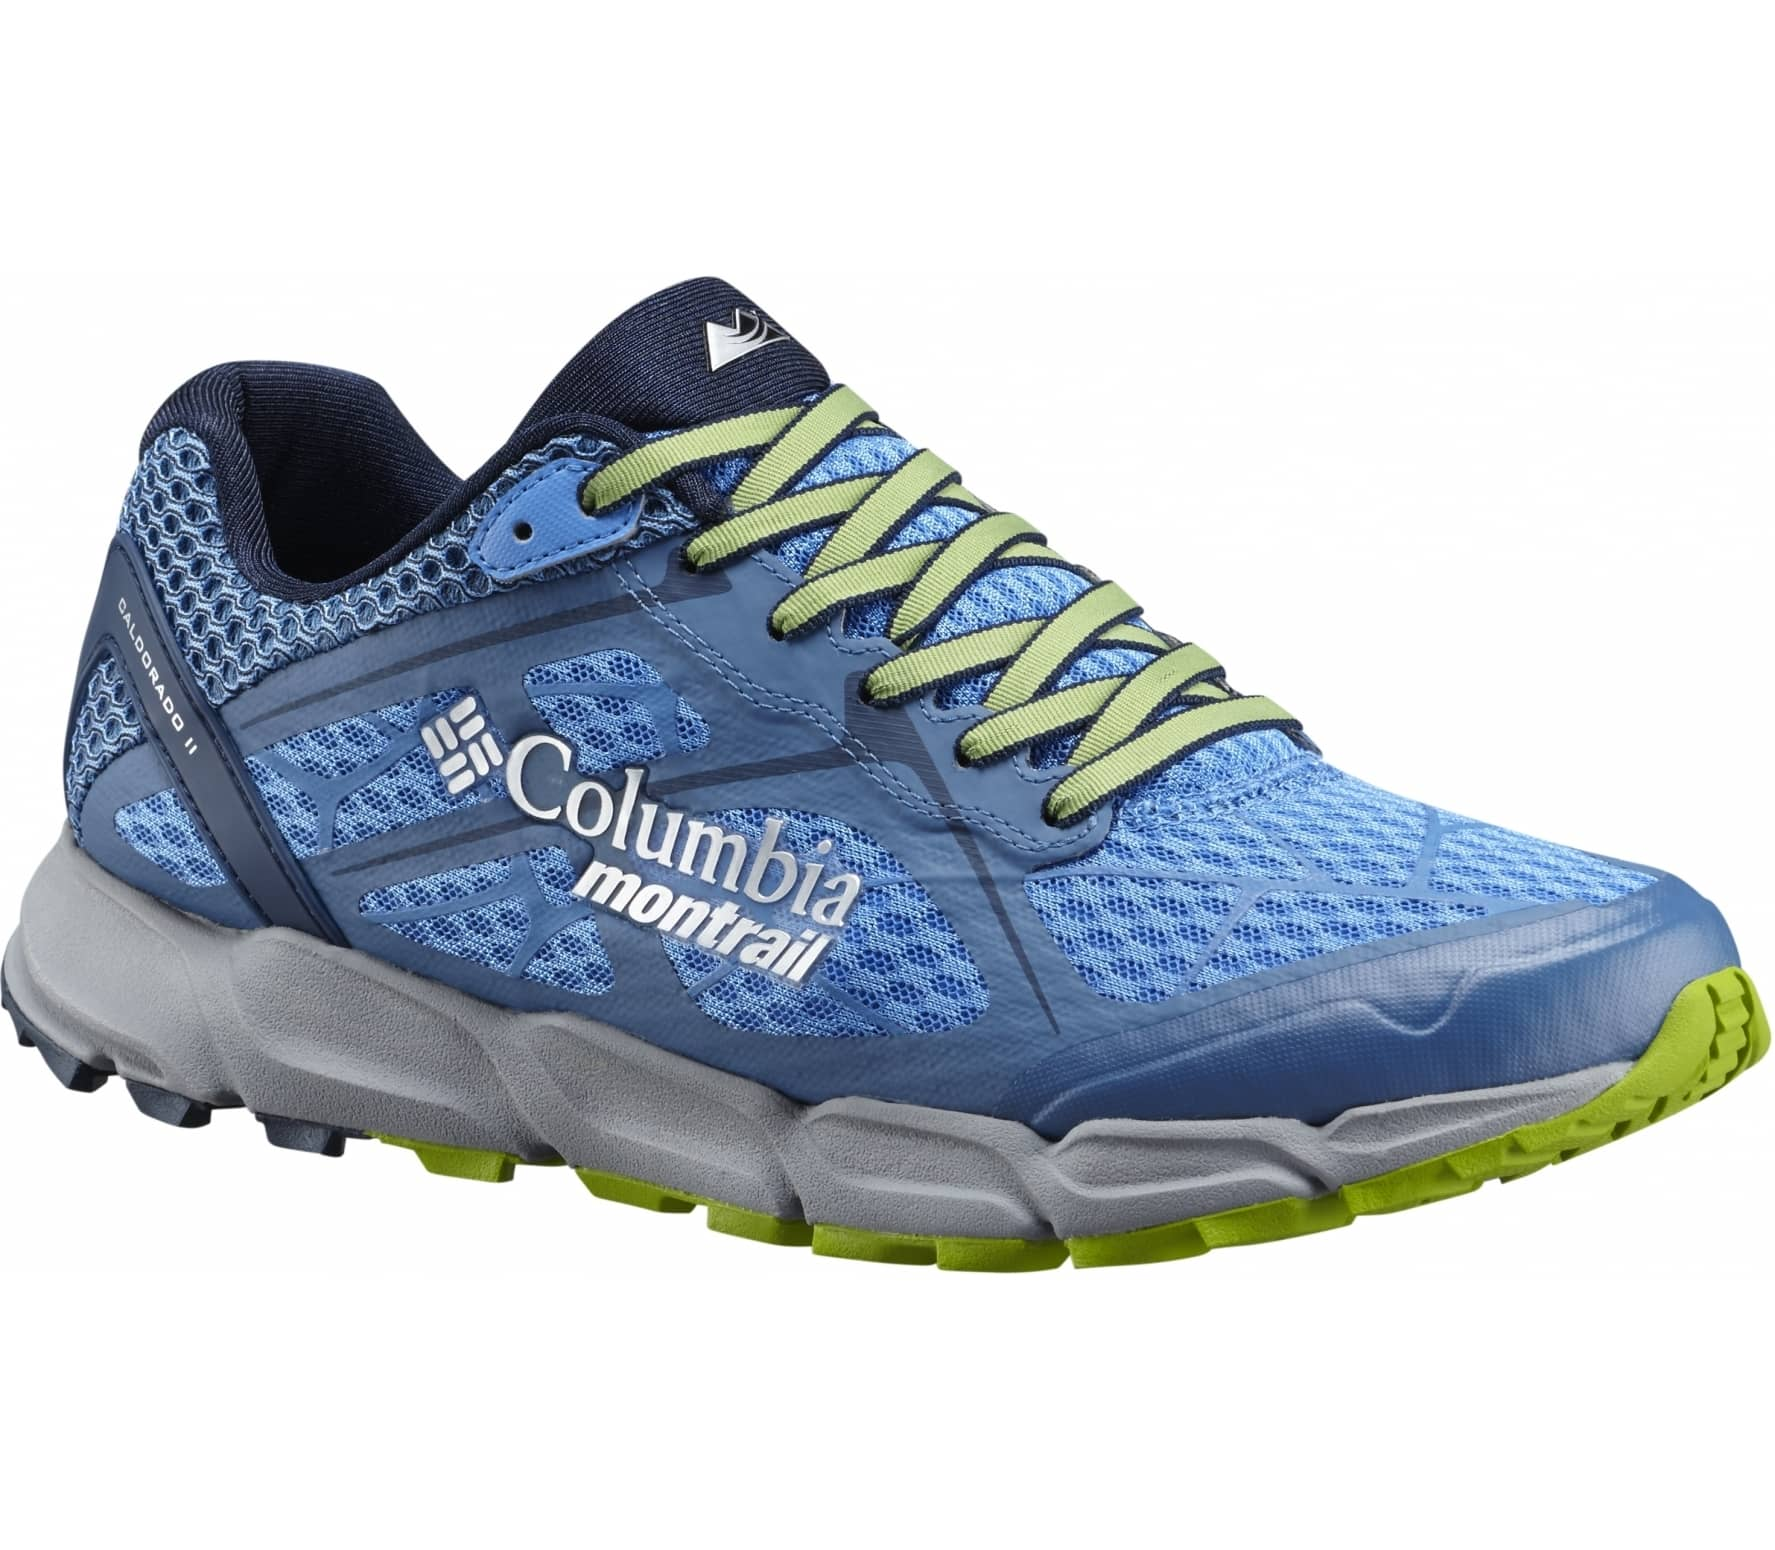 Columbia Running Shoes Cost